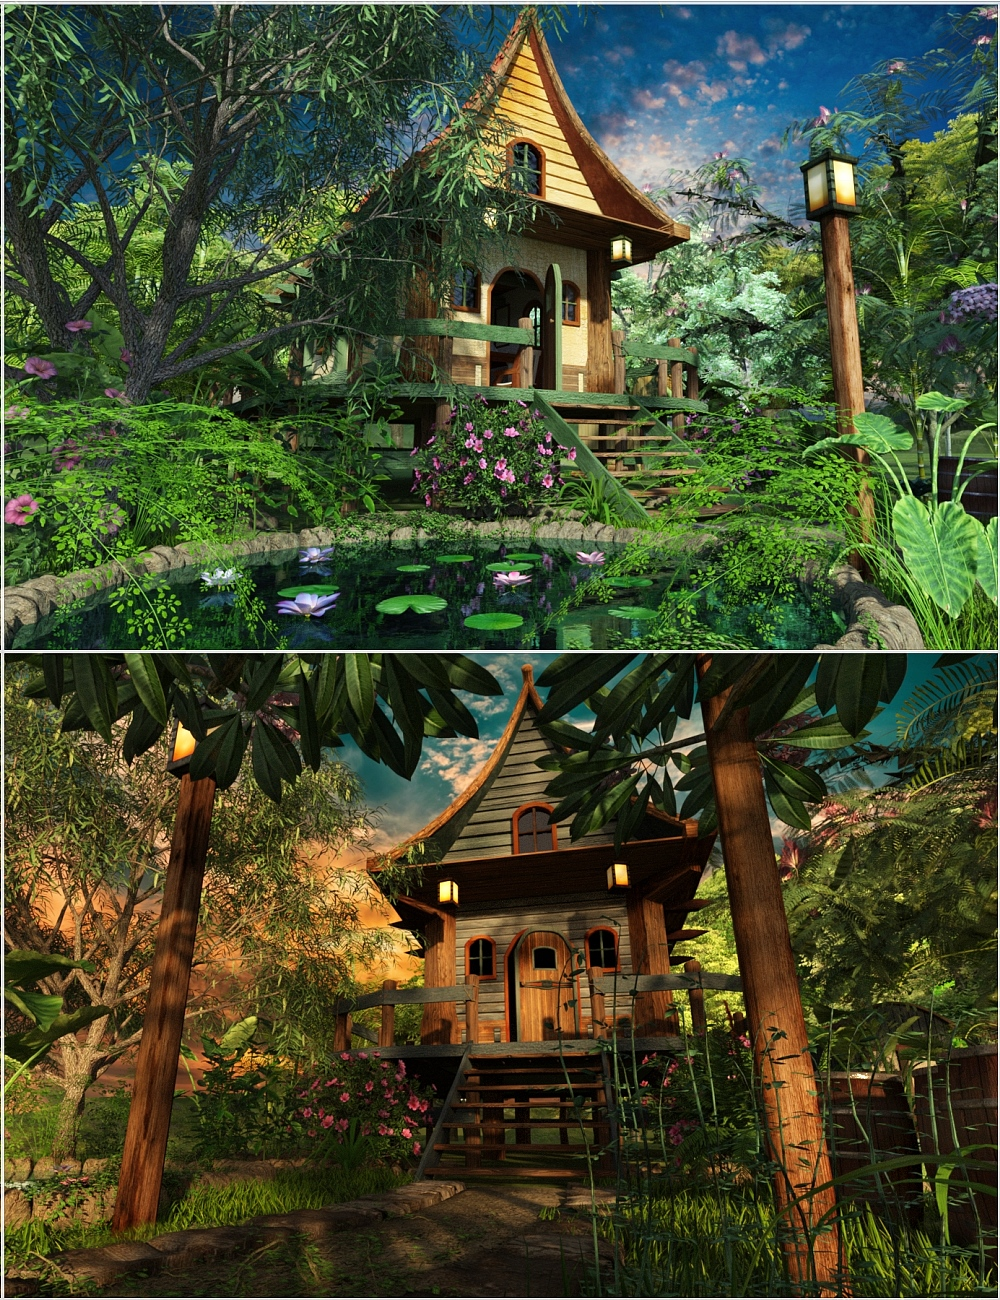 Tiny House and Parklands by: Magix 101, 3D Models by Daz 3D